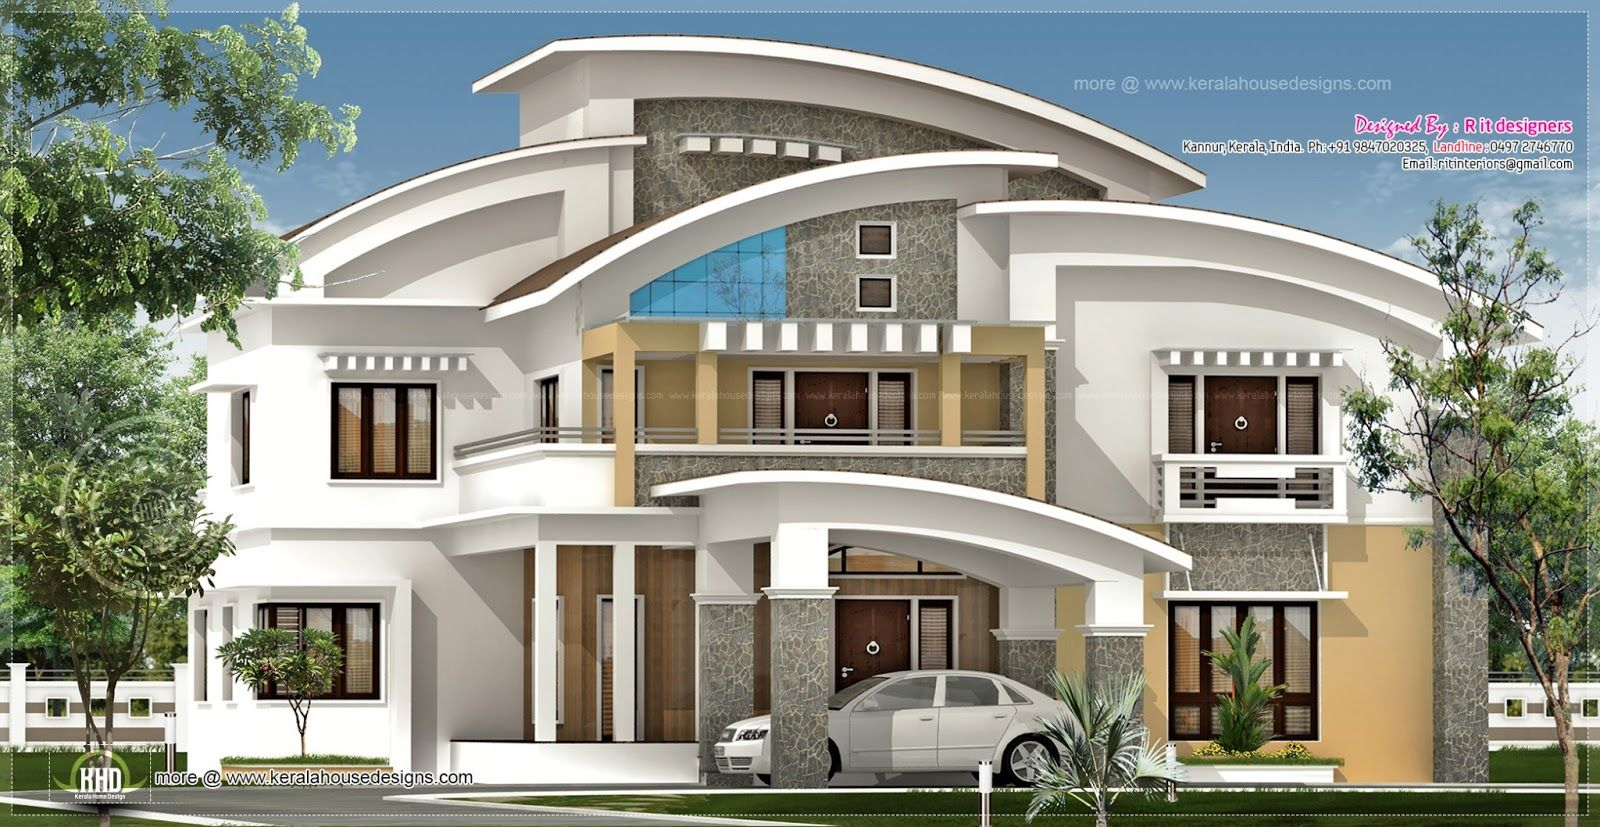 Awesome luxury homes plans 8 french country luxury home for Exterior housing design